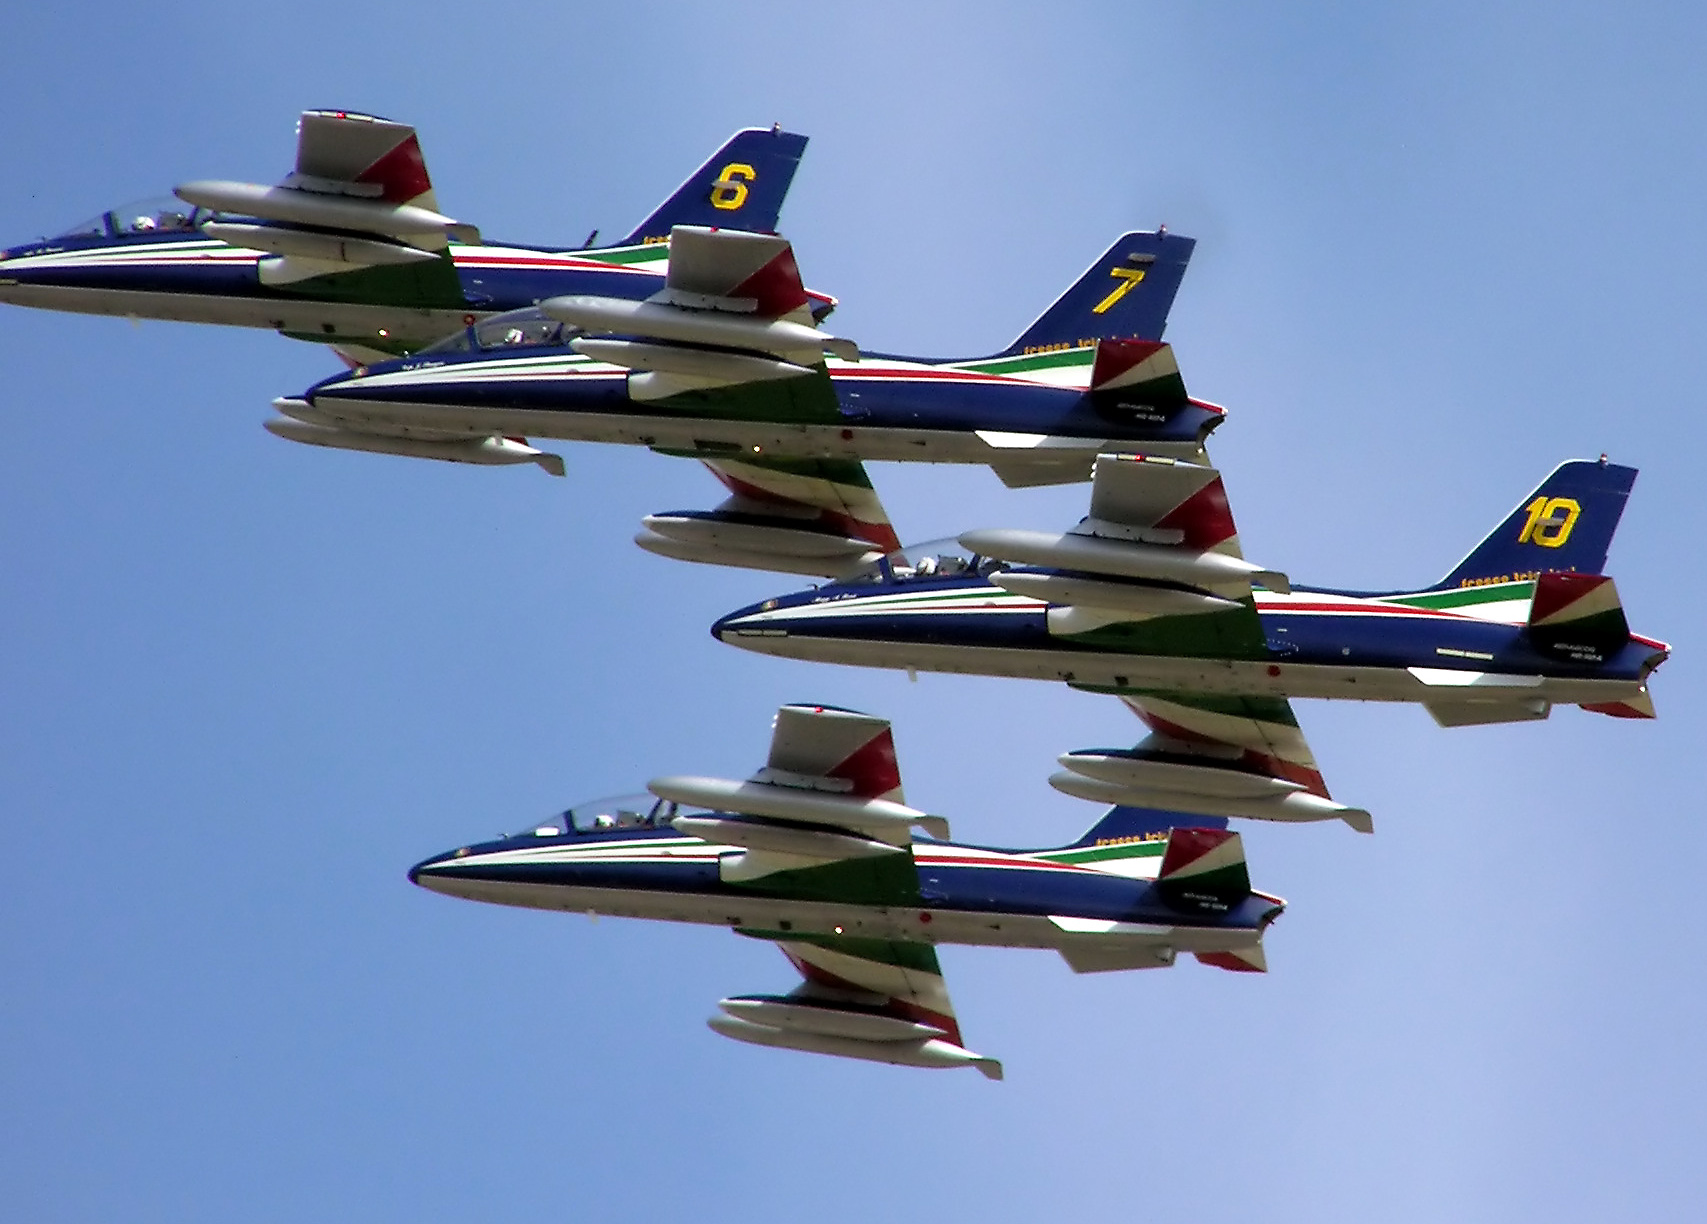 Frecce.tricolore.fairford.arp